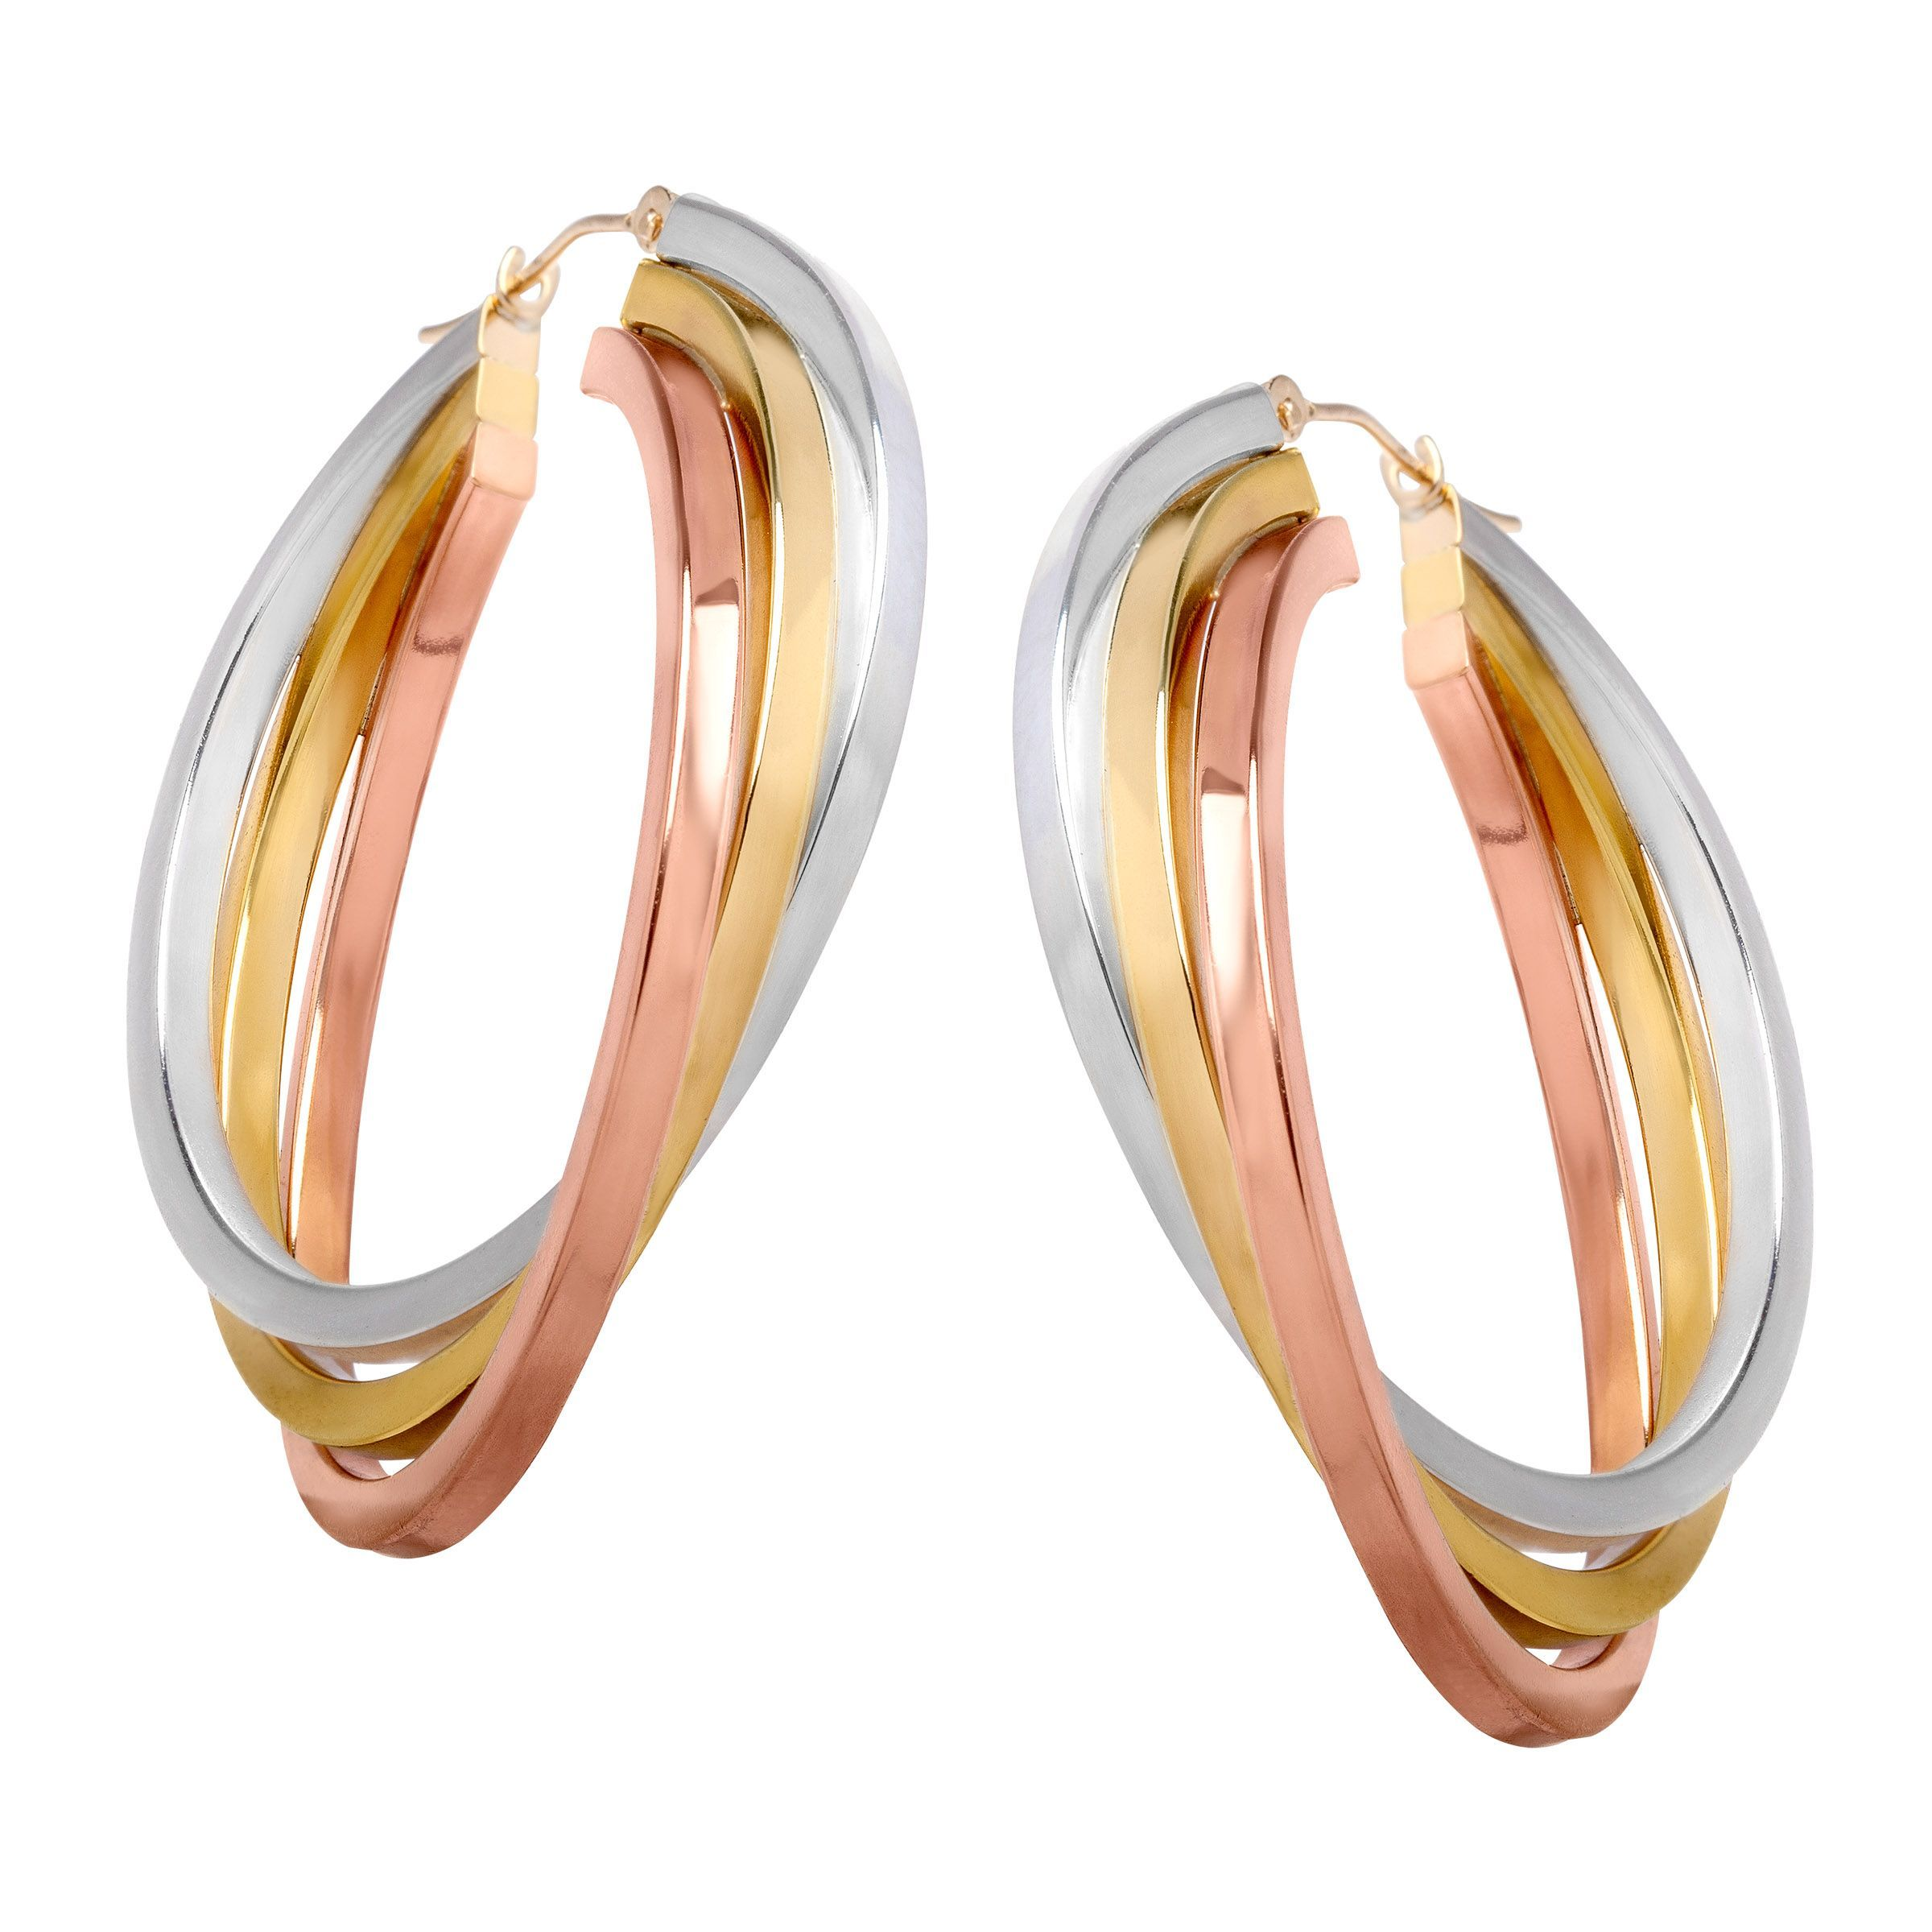 Details About Triple Hoop Earrings In 14k Two Tone Gold Plated Sterling Silver